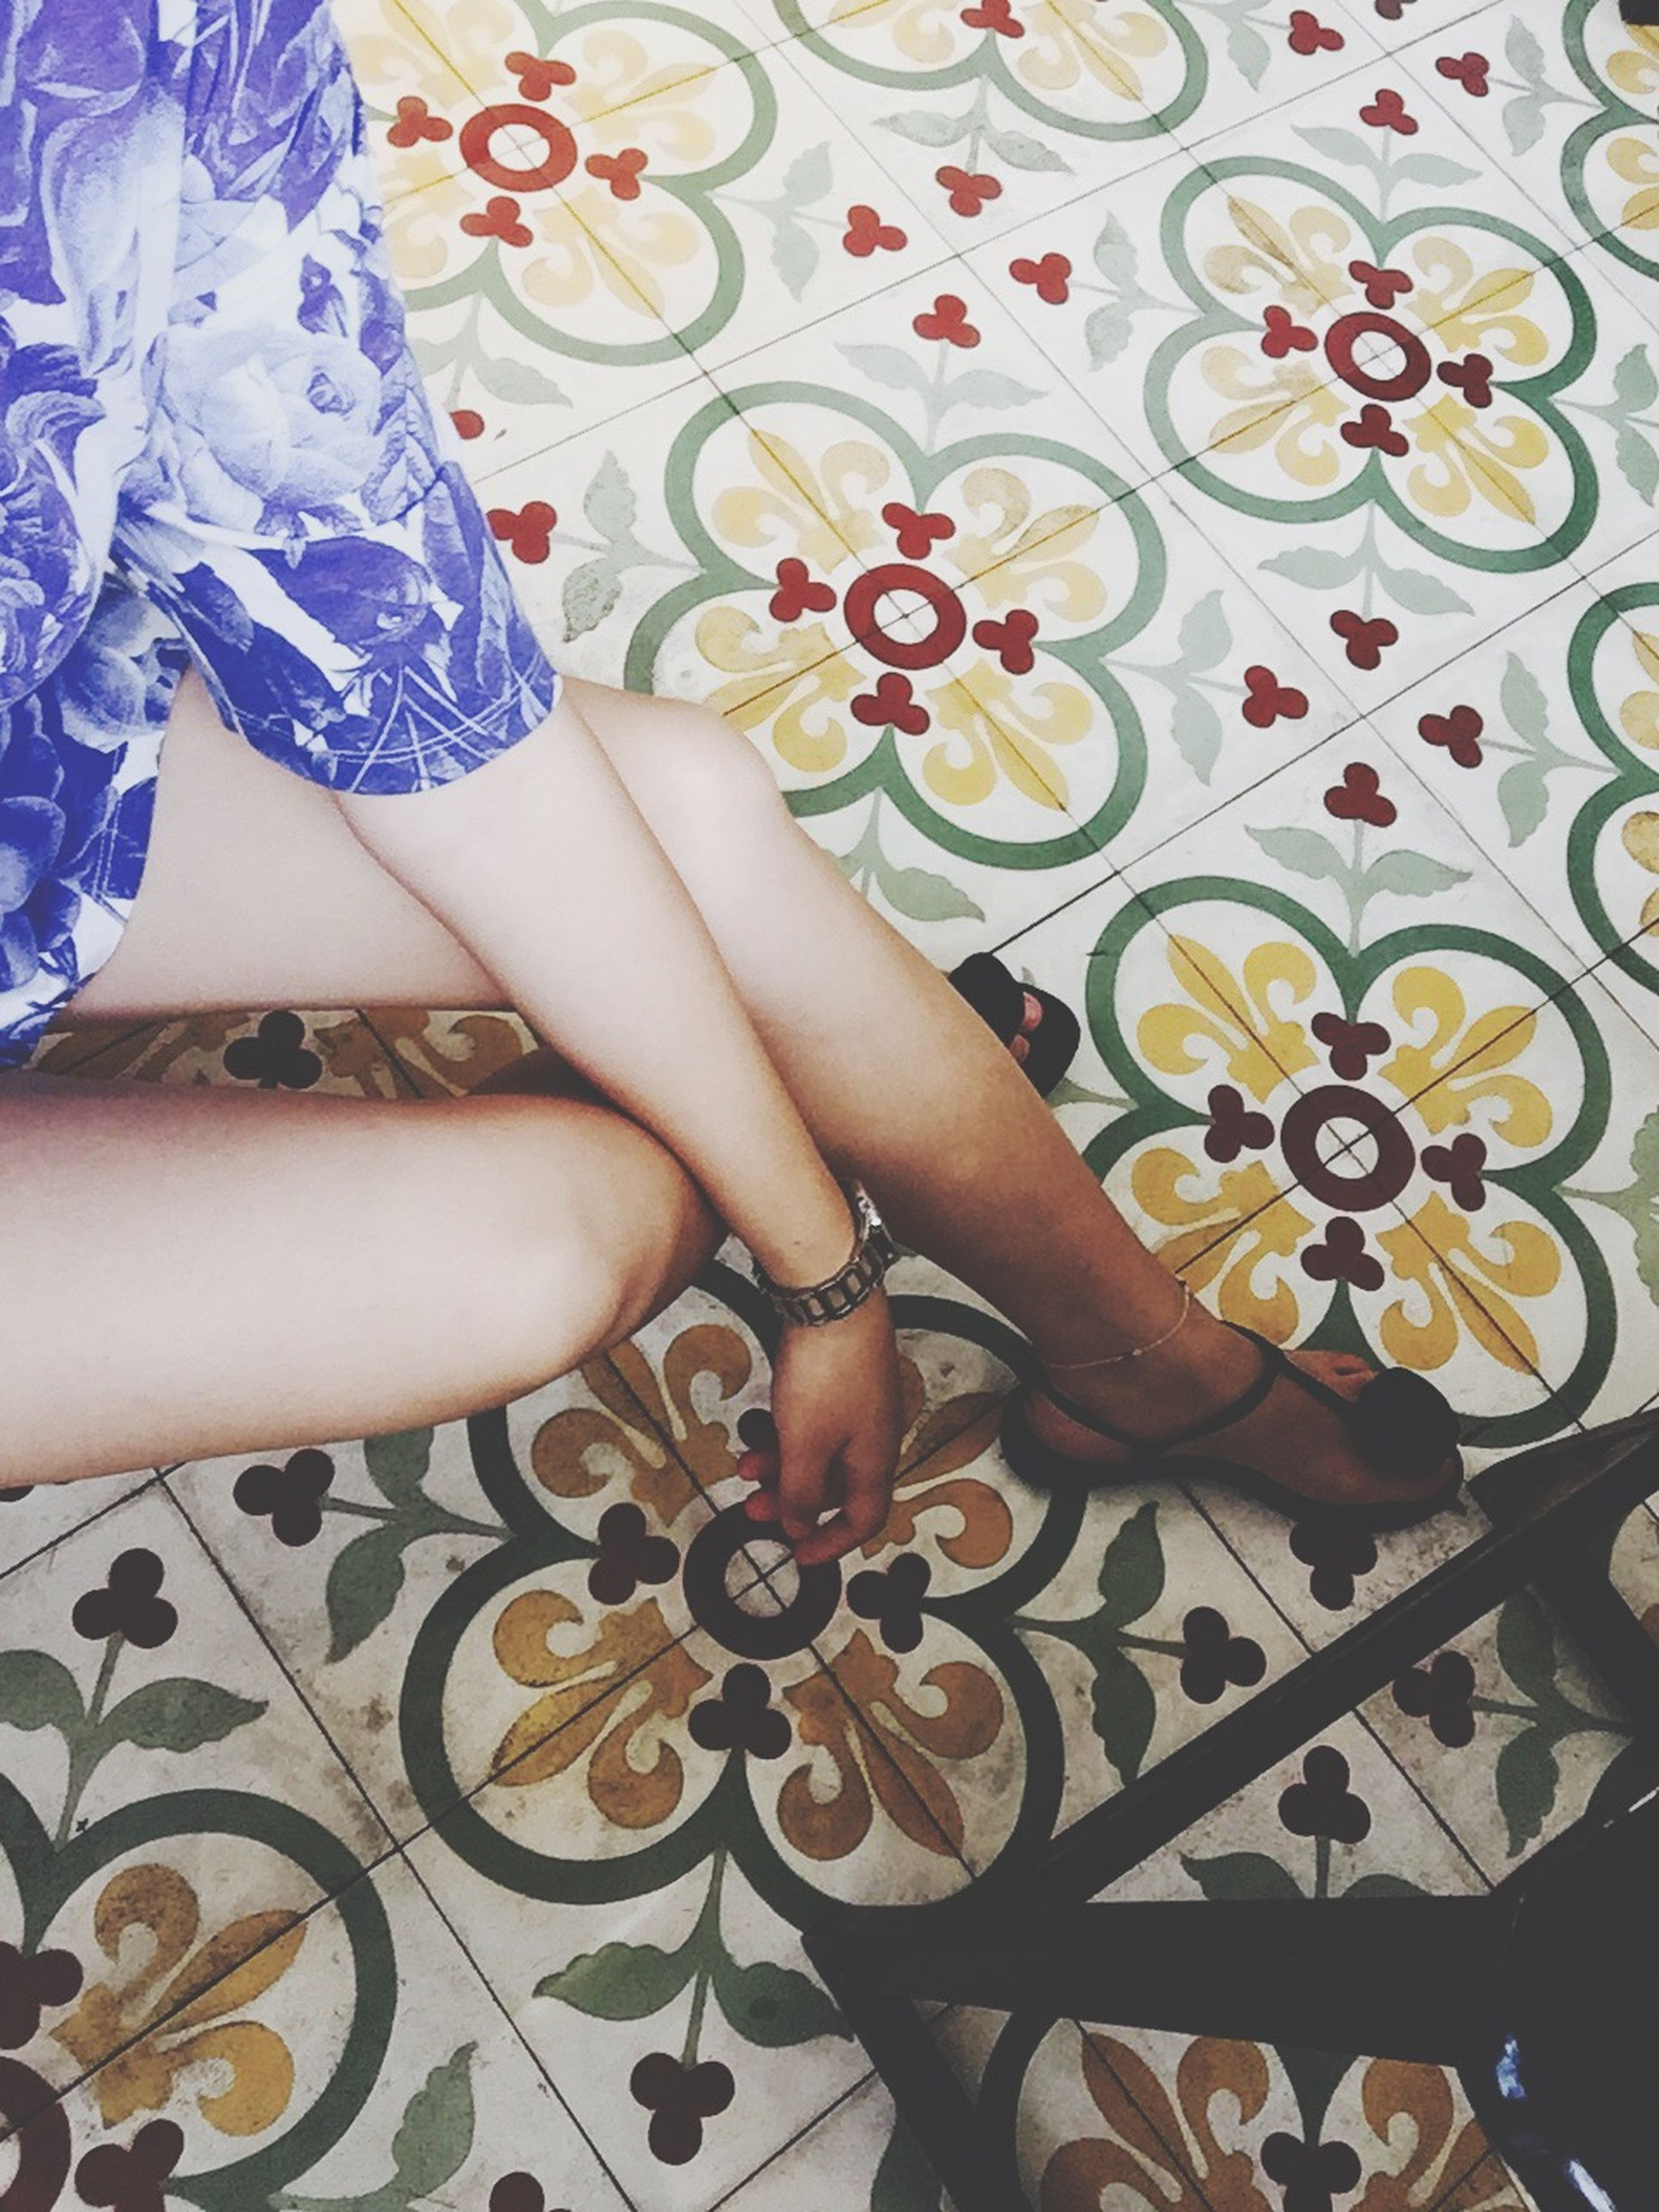 indoors, lifestyles, person, low section, floral pattern, leisure activity, sensuality, creativity, part of, art, young women, design, pattern, wall - building feature, fashion